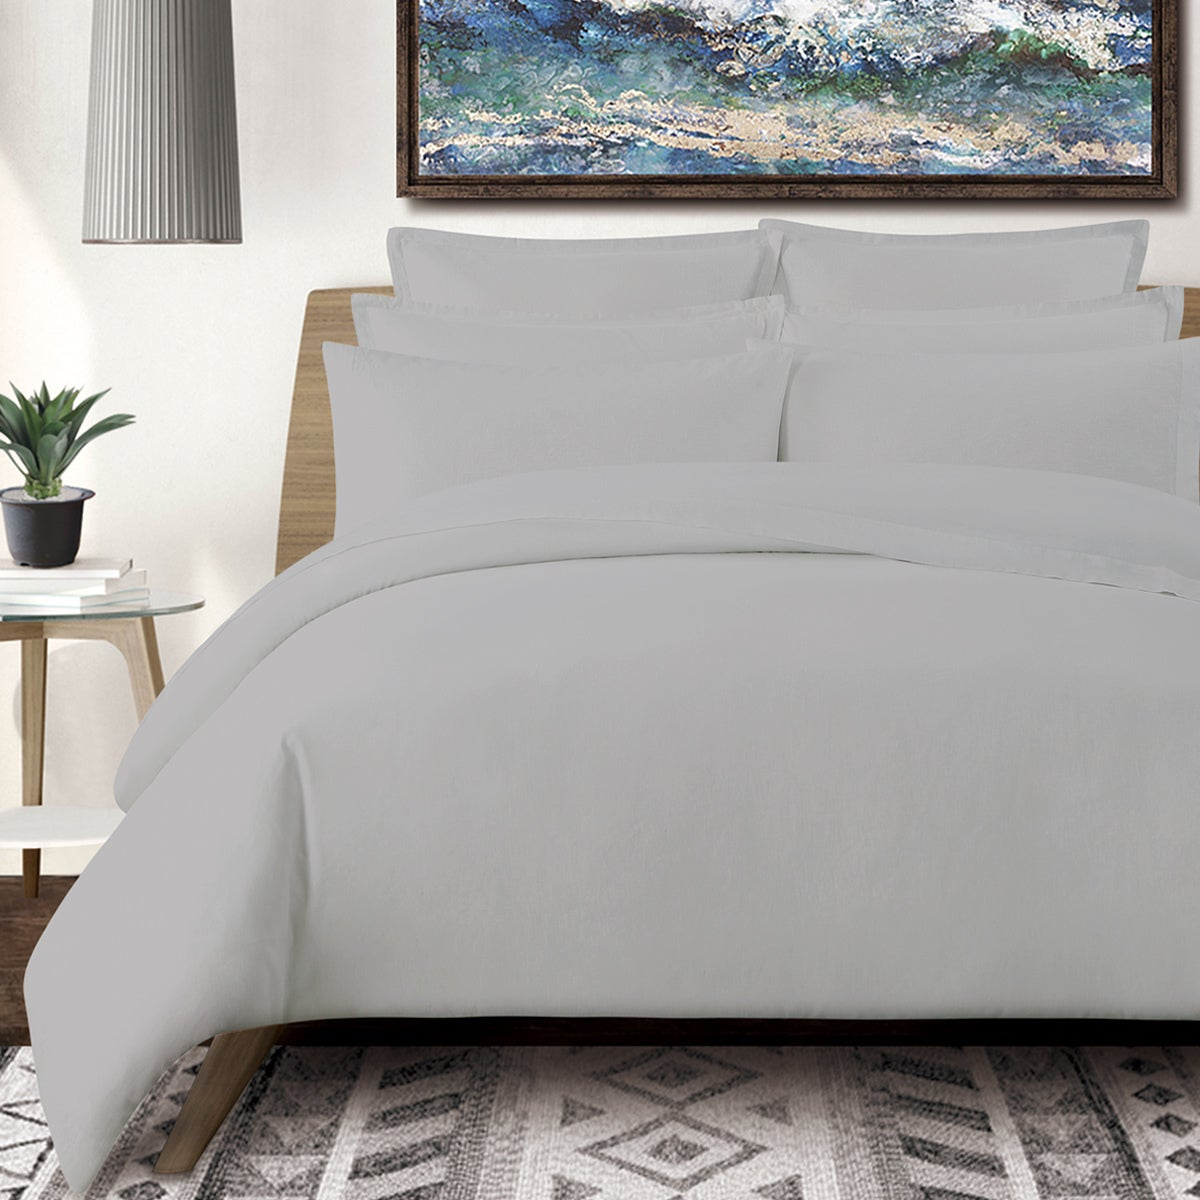 Washed Linen Cotton Blend Sheet Set Free Shipping Today 17629641